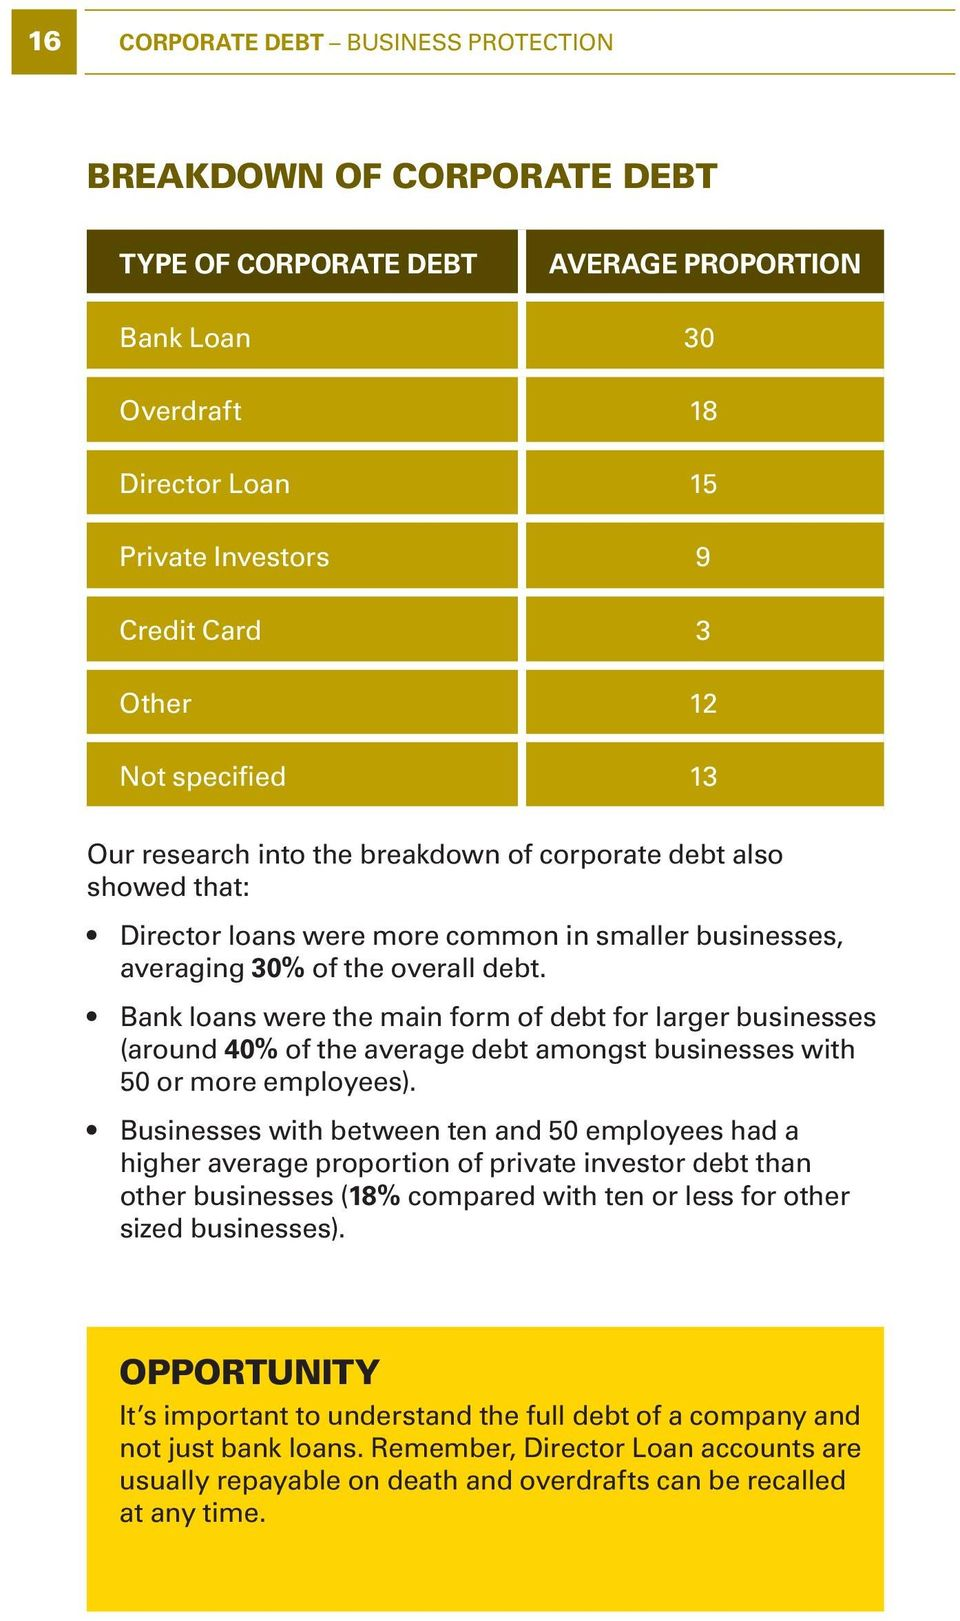 Bank loans were the main form of debt for larger businesses (around 40% of the average debt amongst businesses with 50 or more employees).